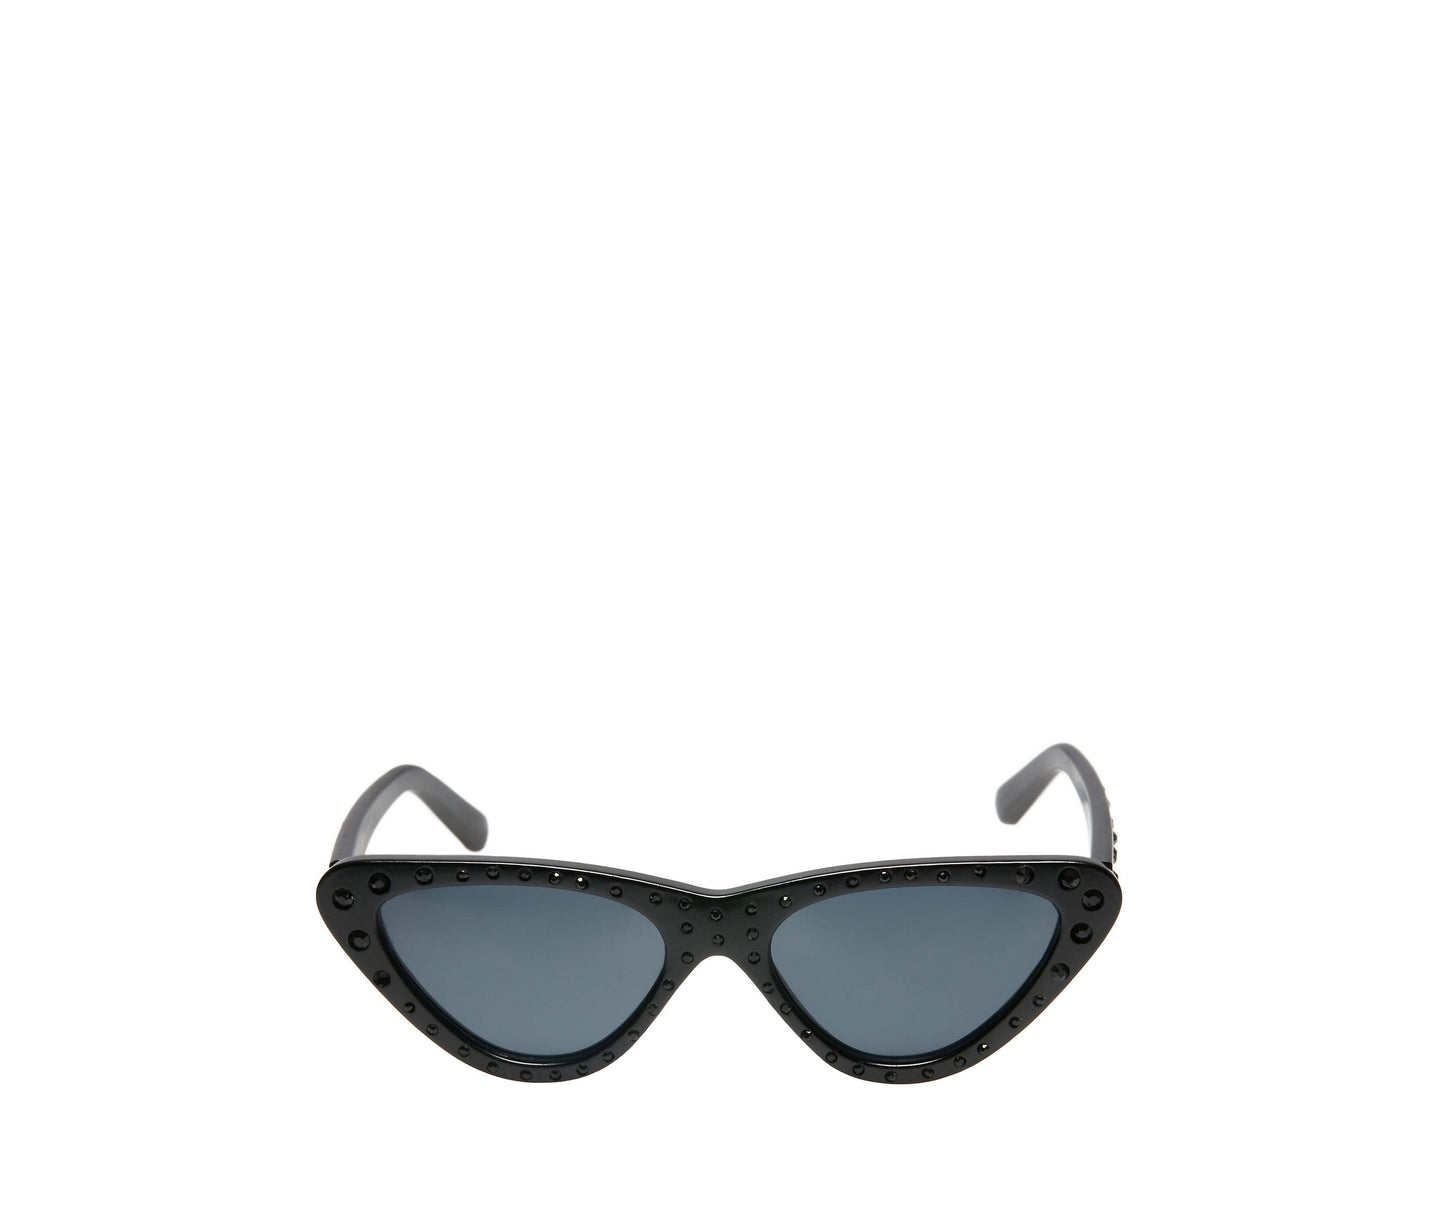 MEOW ABOUT IT SUNGLASSES BLACK - ACCESSORIES - Betsey Johnson